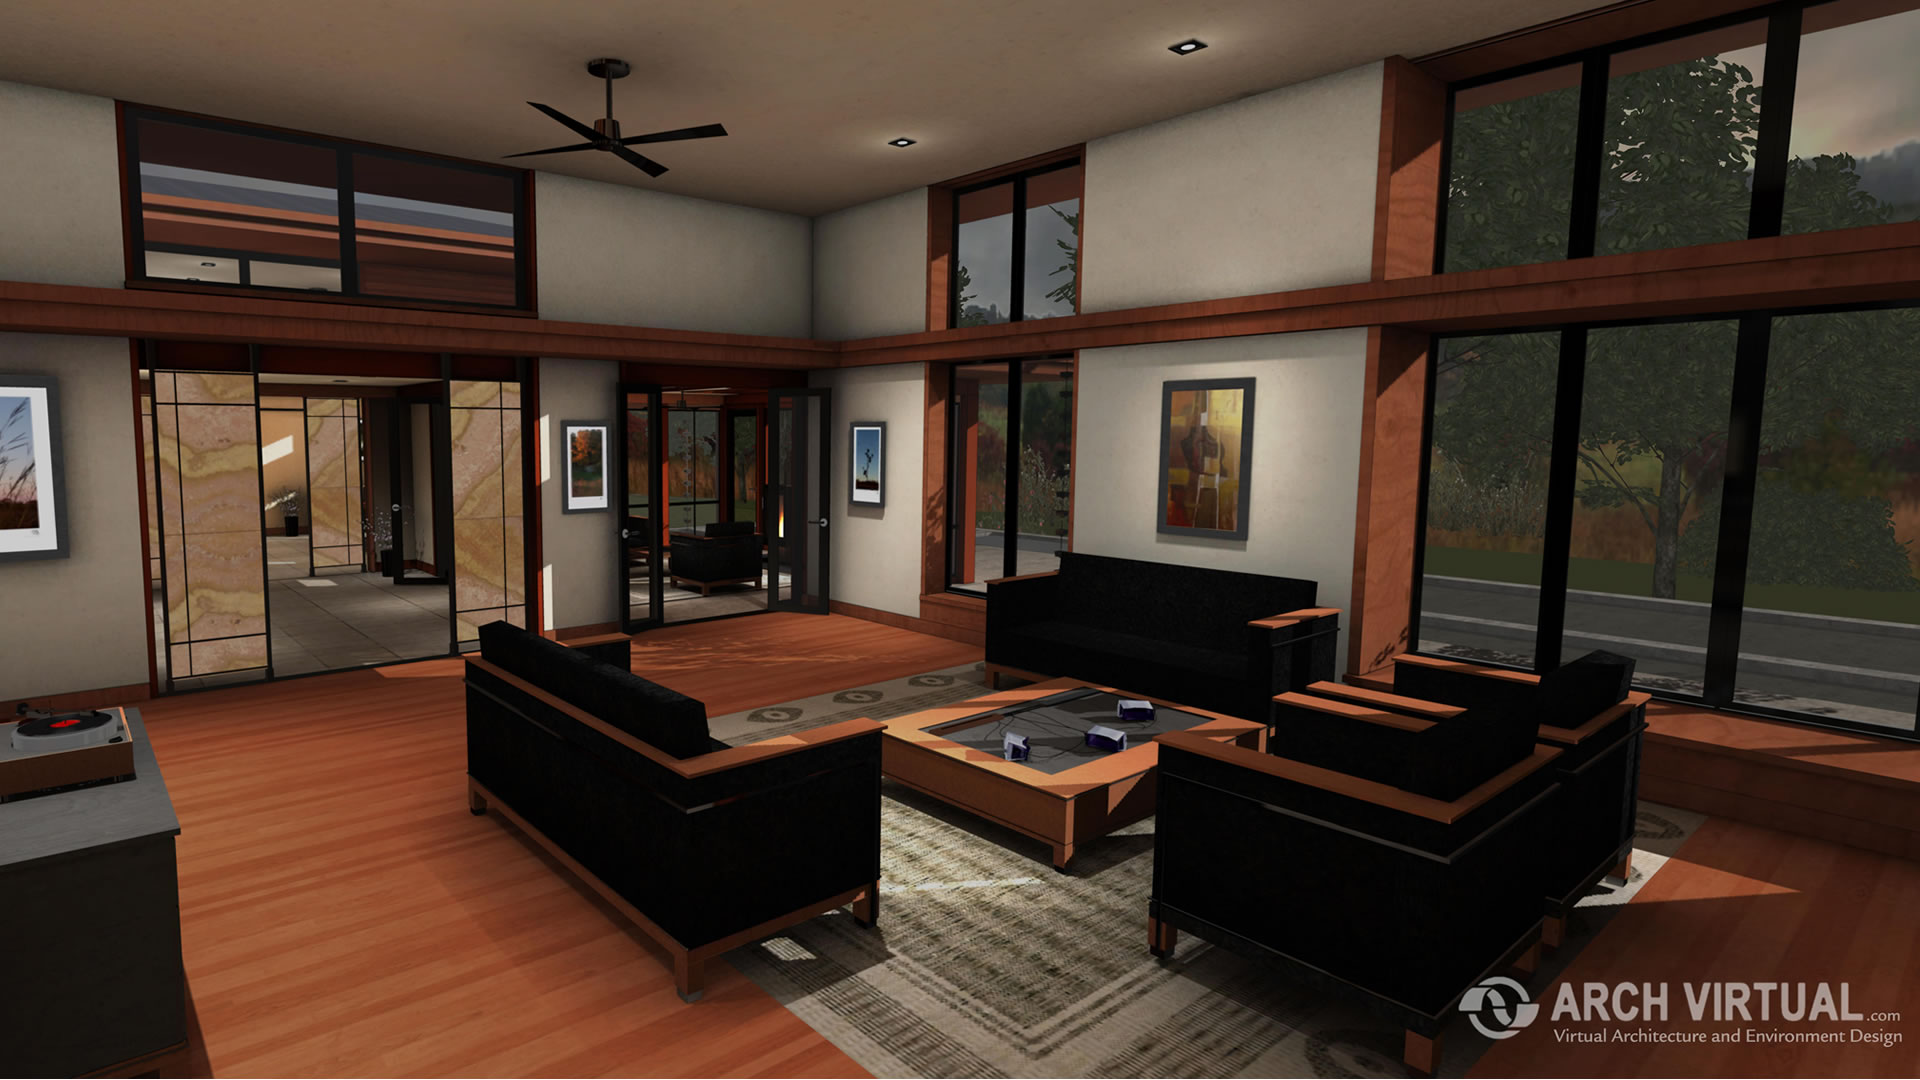 Architecture Design Your Own House 28+ [ virtual design your own home game ] | virtual house